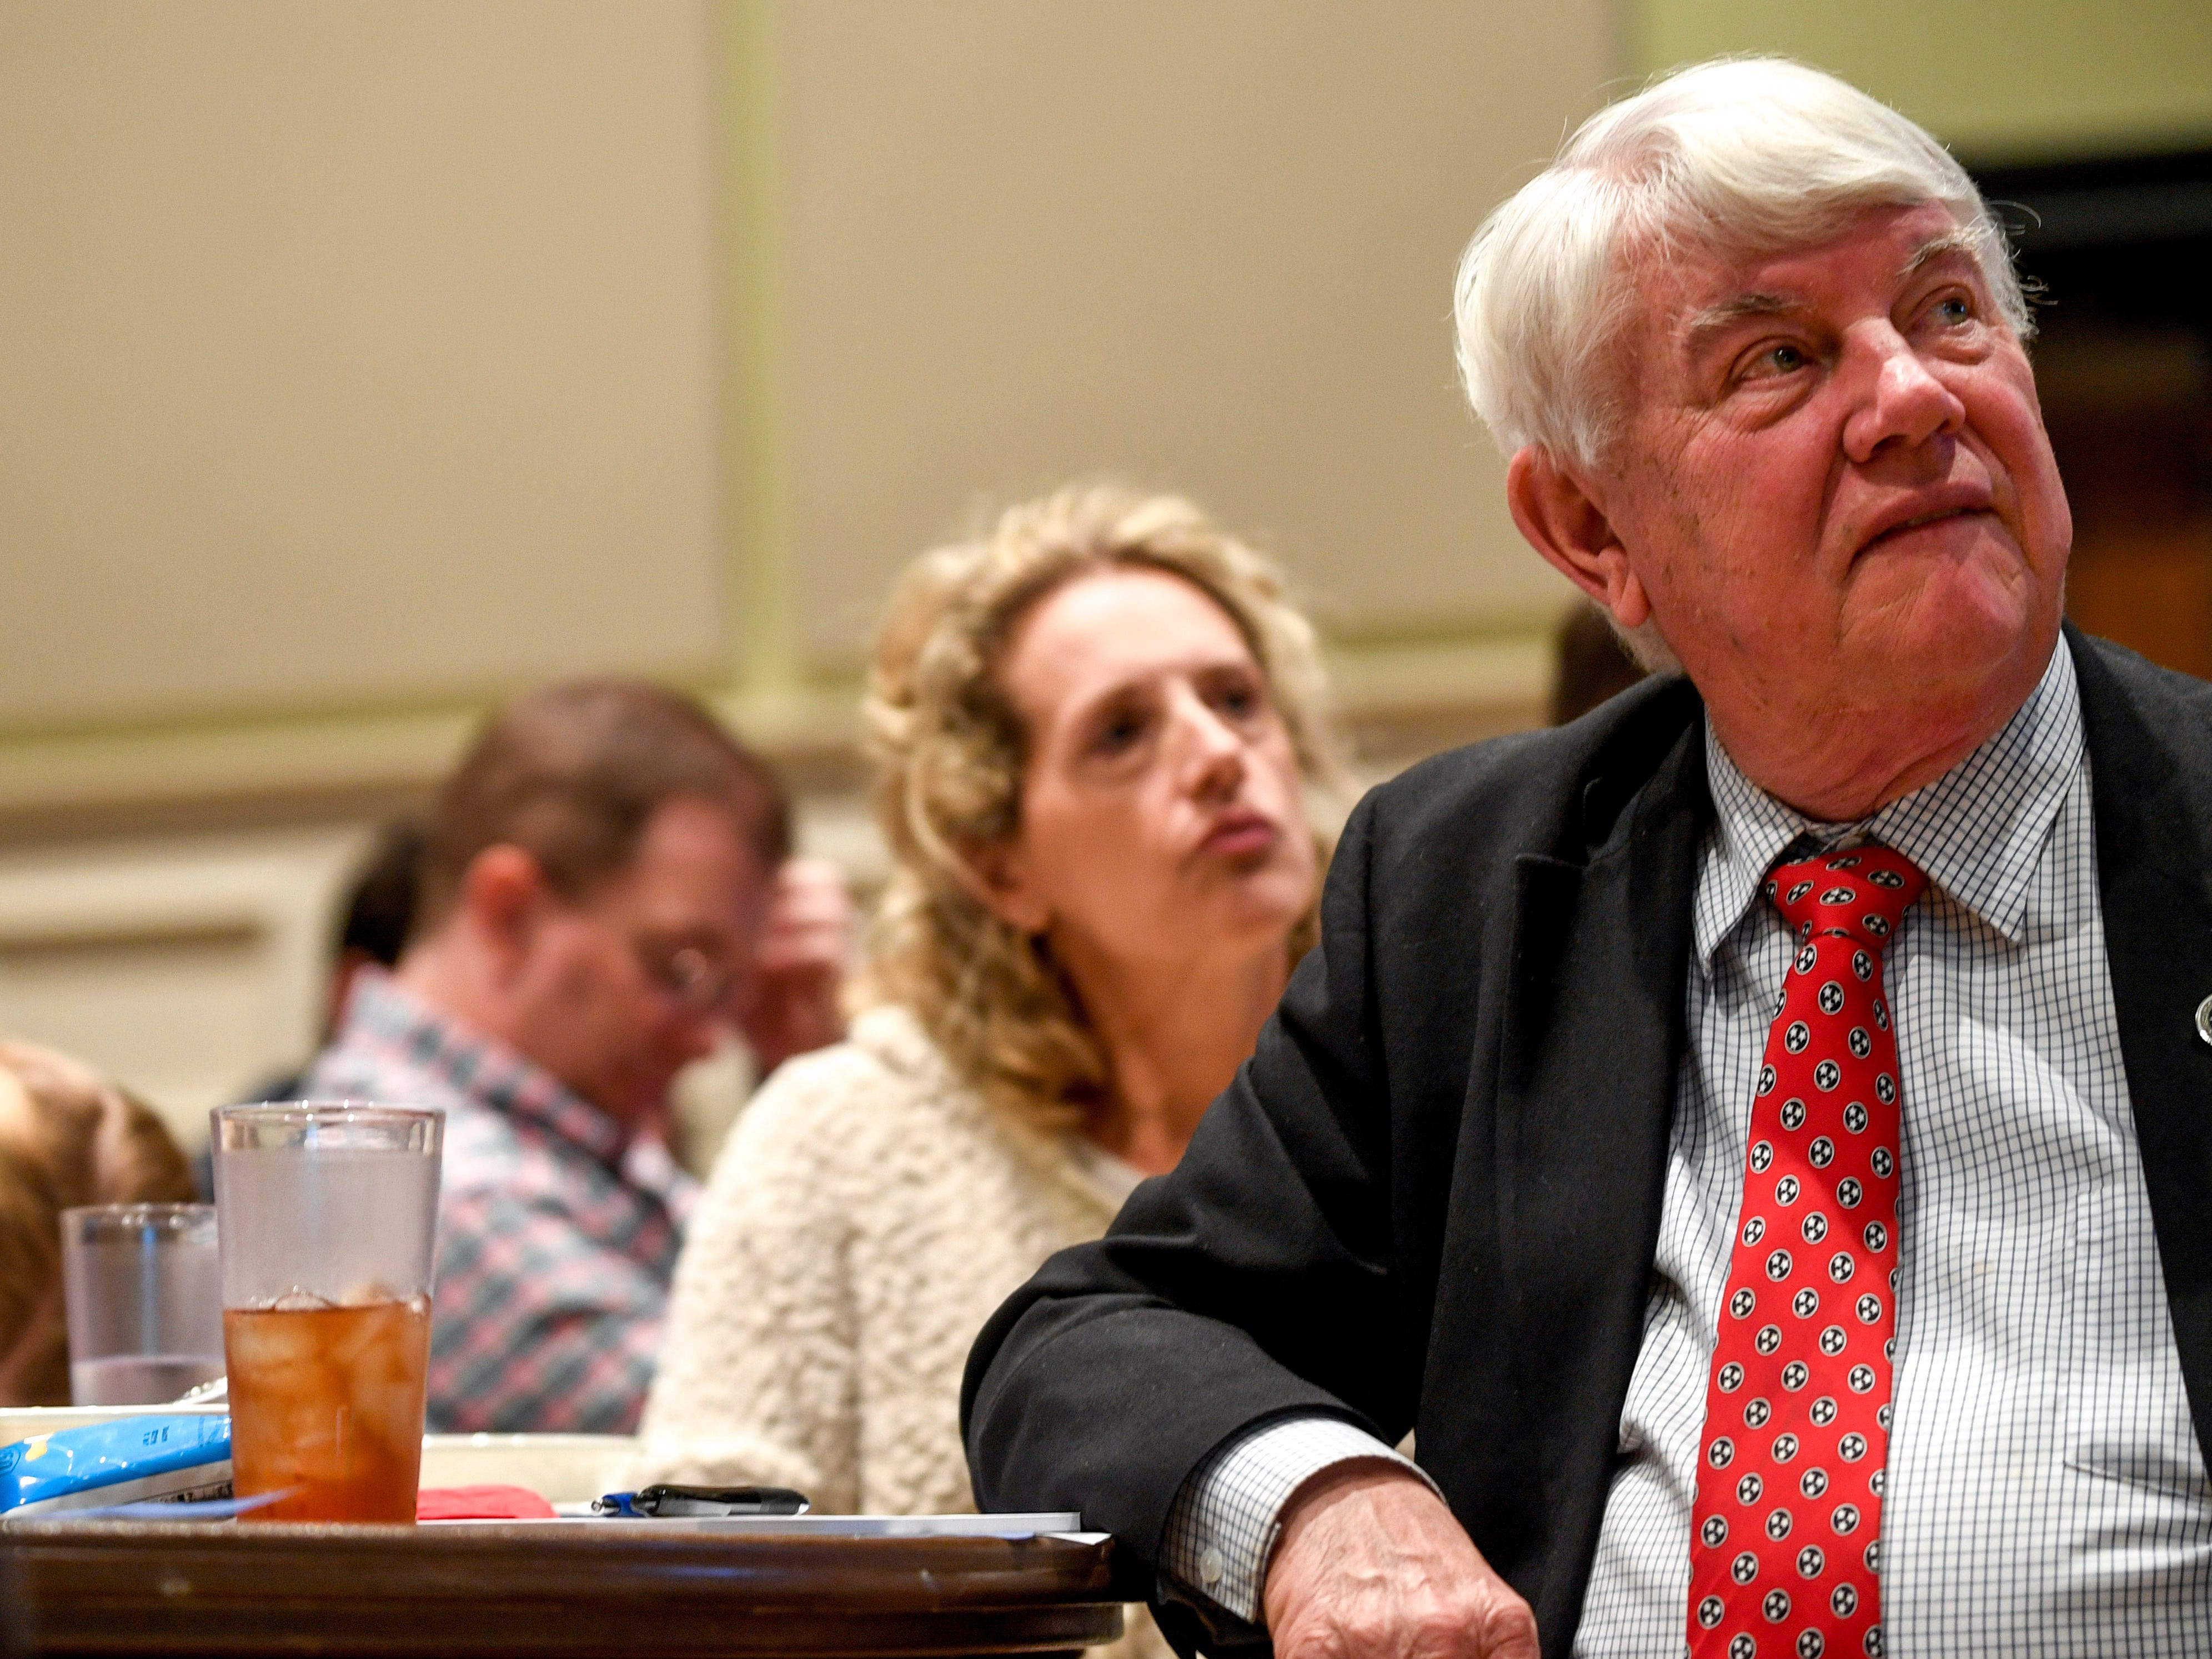 Mayoral candidate Jimmy Eldridge listens to speakers during the monthly First Friday Forum at First United Methodist Church in Jackson, Tenn., on Friday, Jan. 4, 2019.